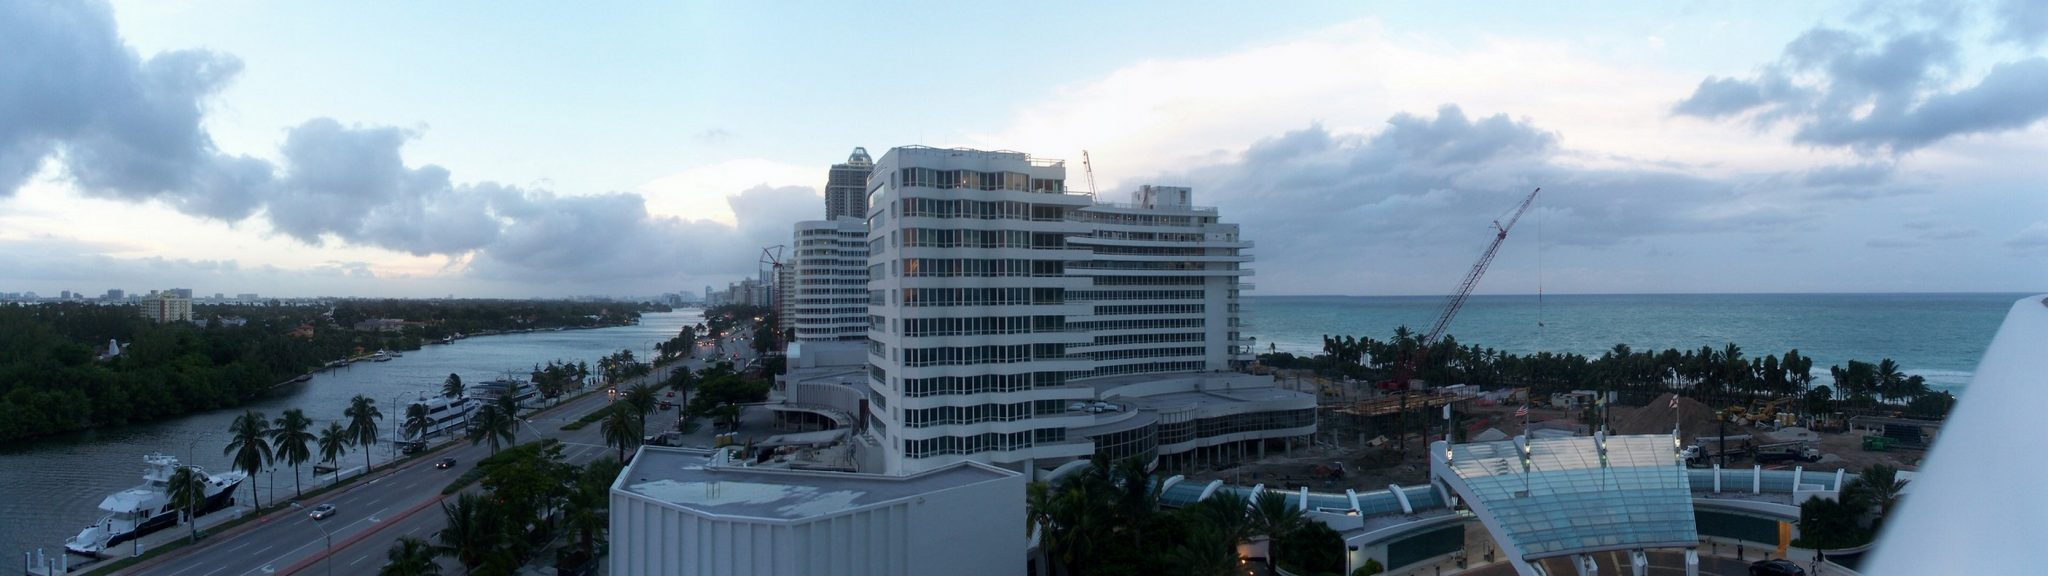 Miami, Bay and ocean view, South Beach